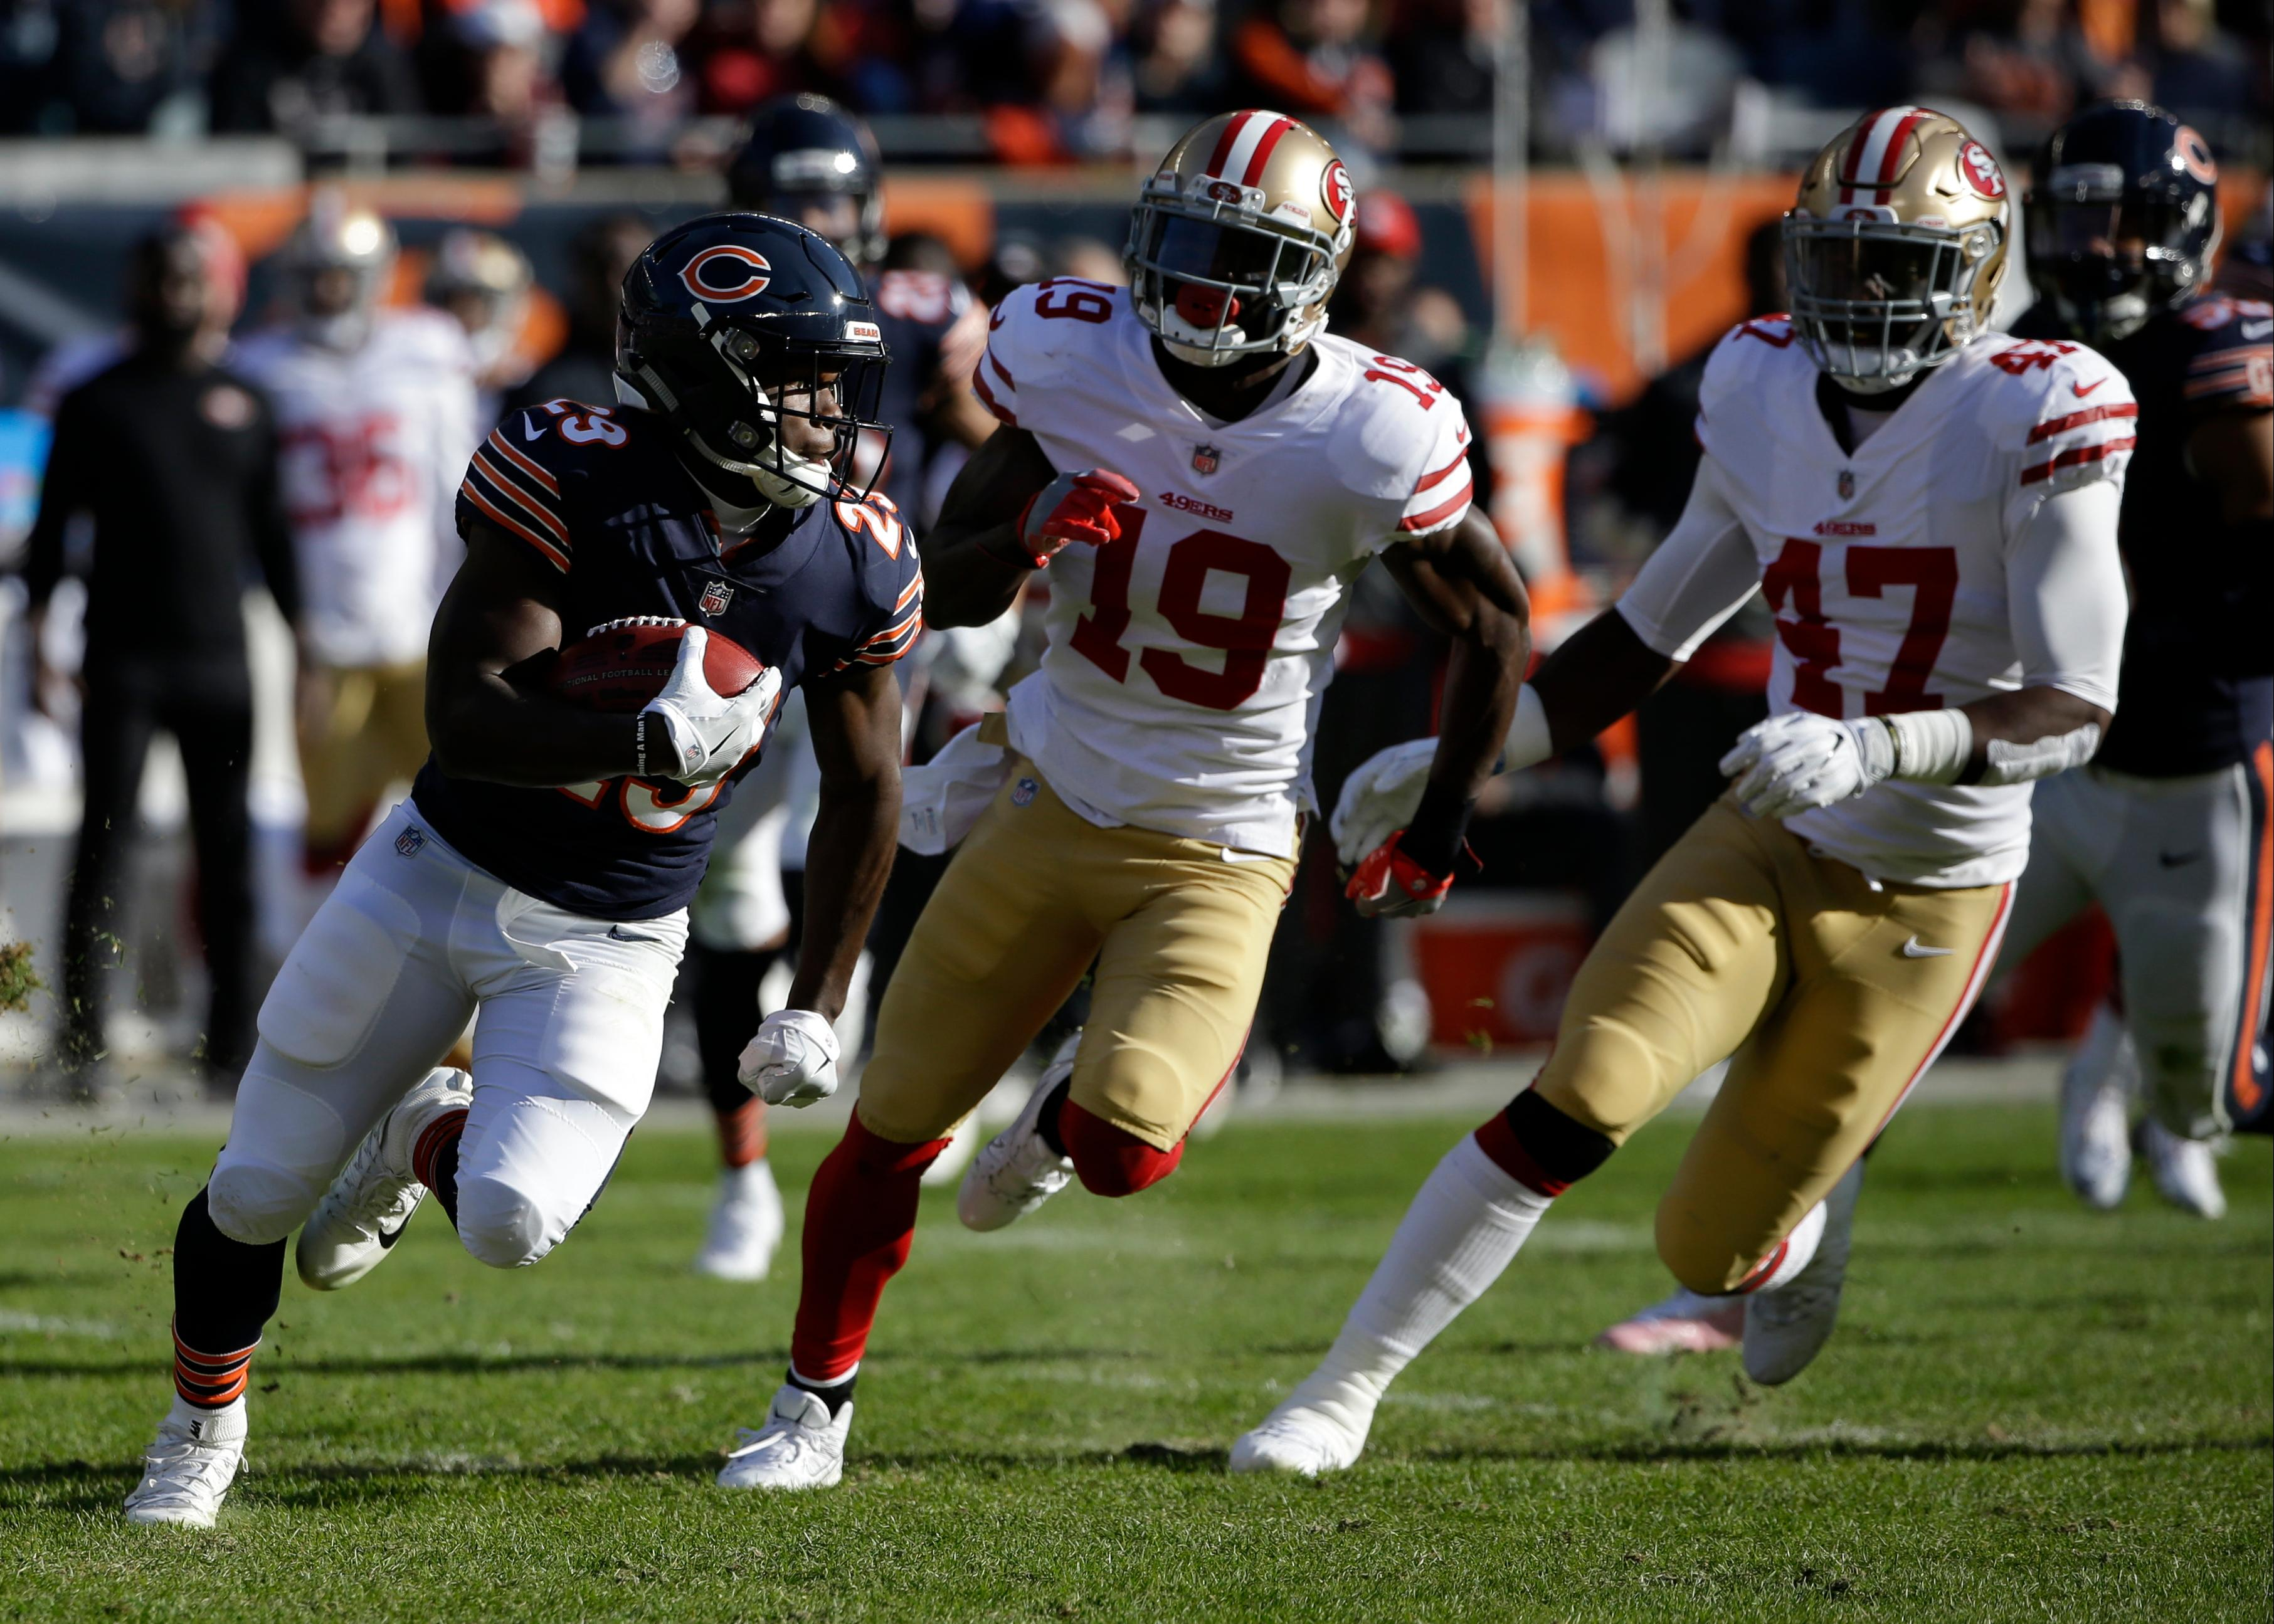 Chicago Bears running back Tarik Cohen (29) makes a 61-years touchdown run on a punt return during the first half of an NFL football game against the San Francisco 49ers, Sunday, Dec. 3, 2017, in Chicago. (AP Photo/Nam Y. Huh)